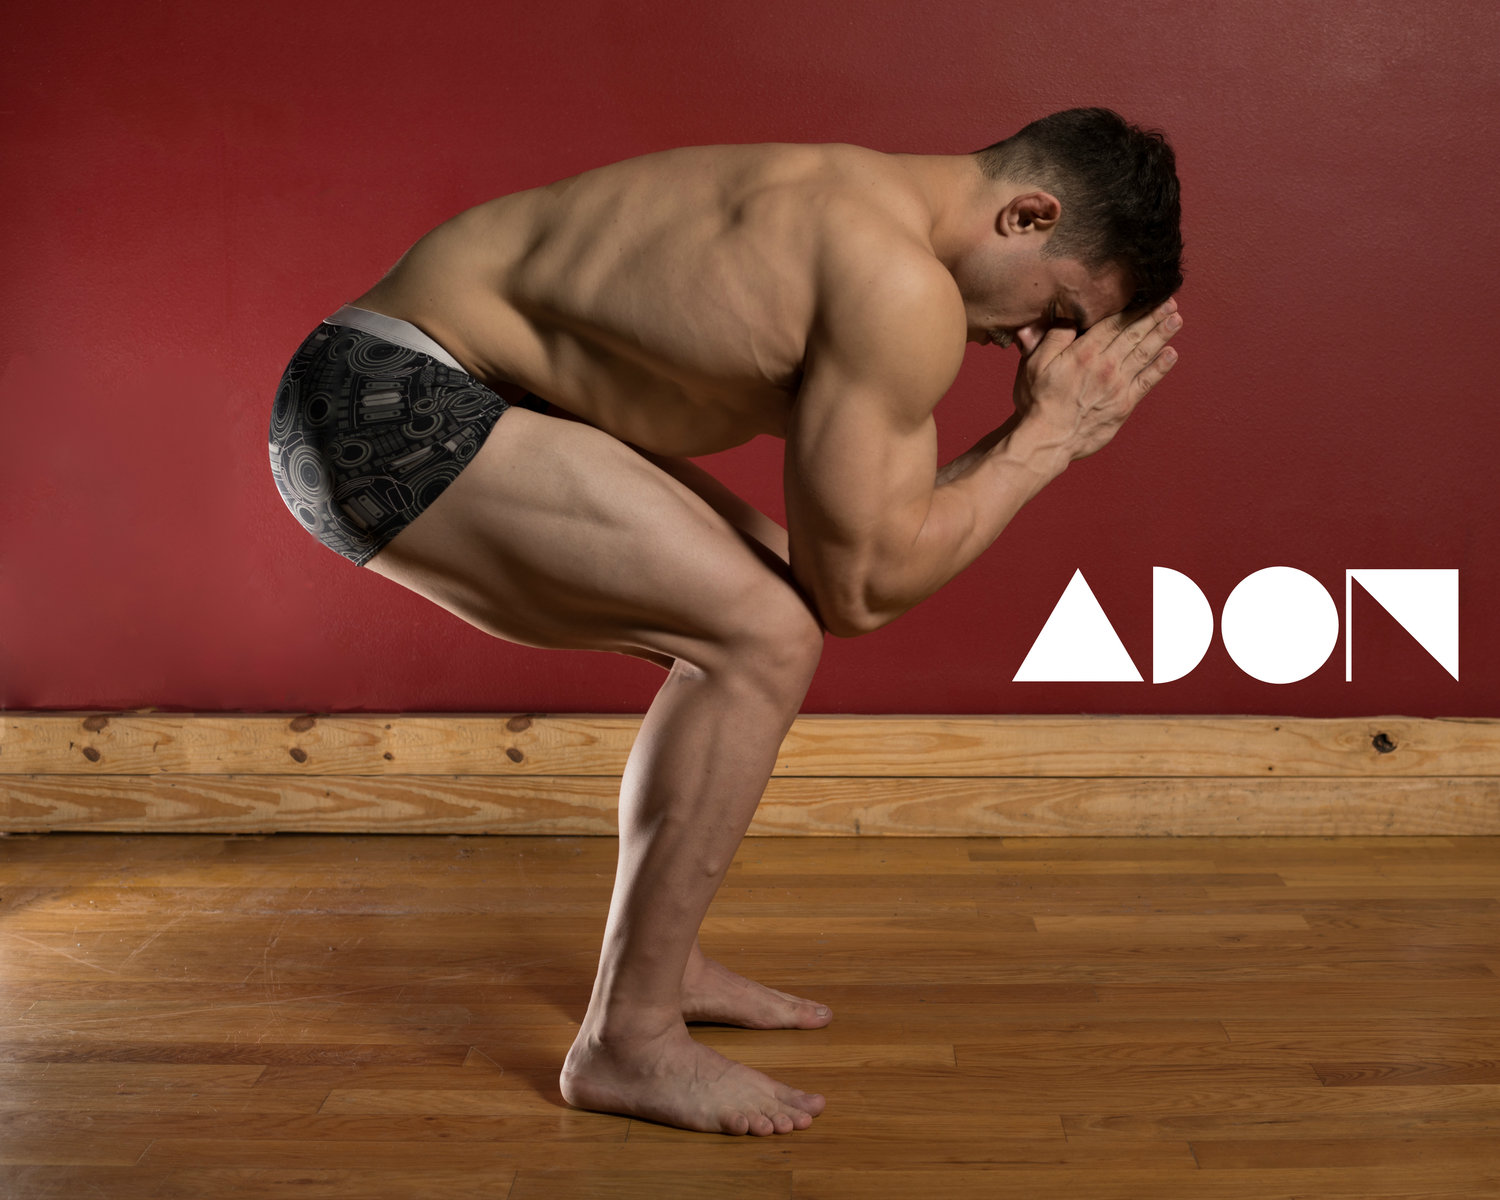 Adon Exclusive: Model Roy Fontenelle  By Brian Huey